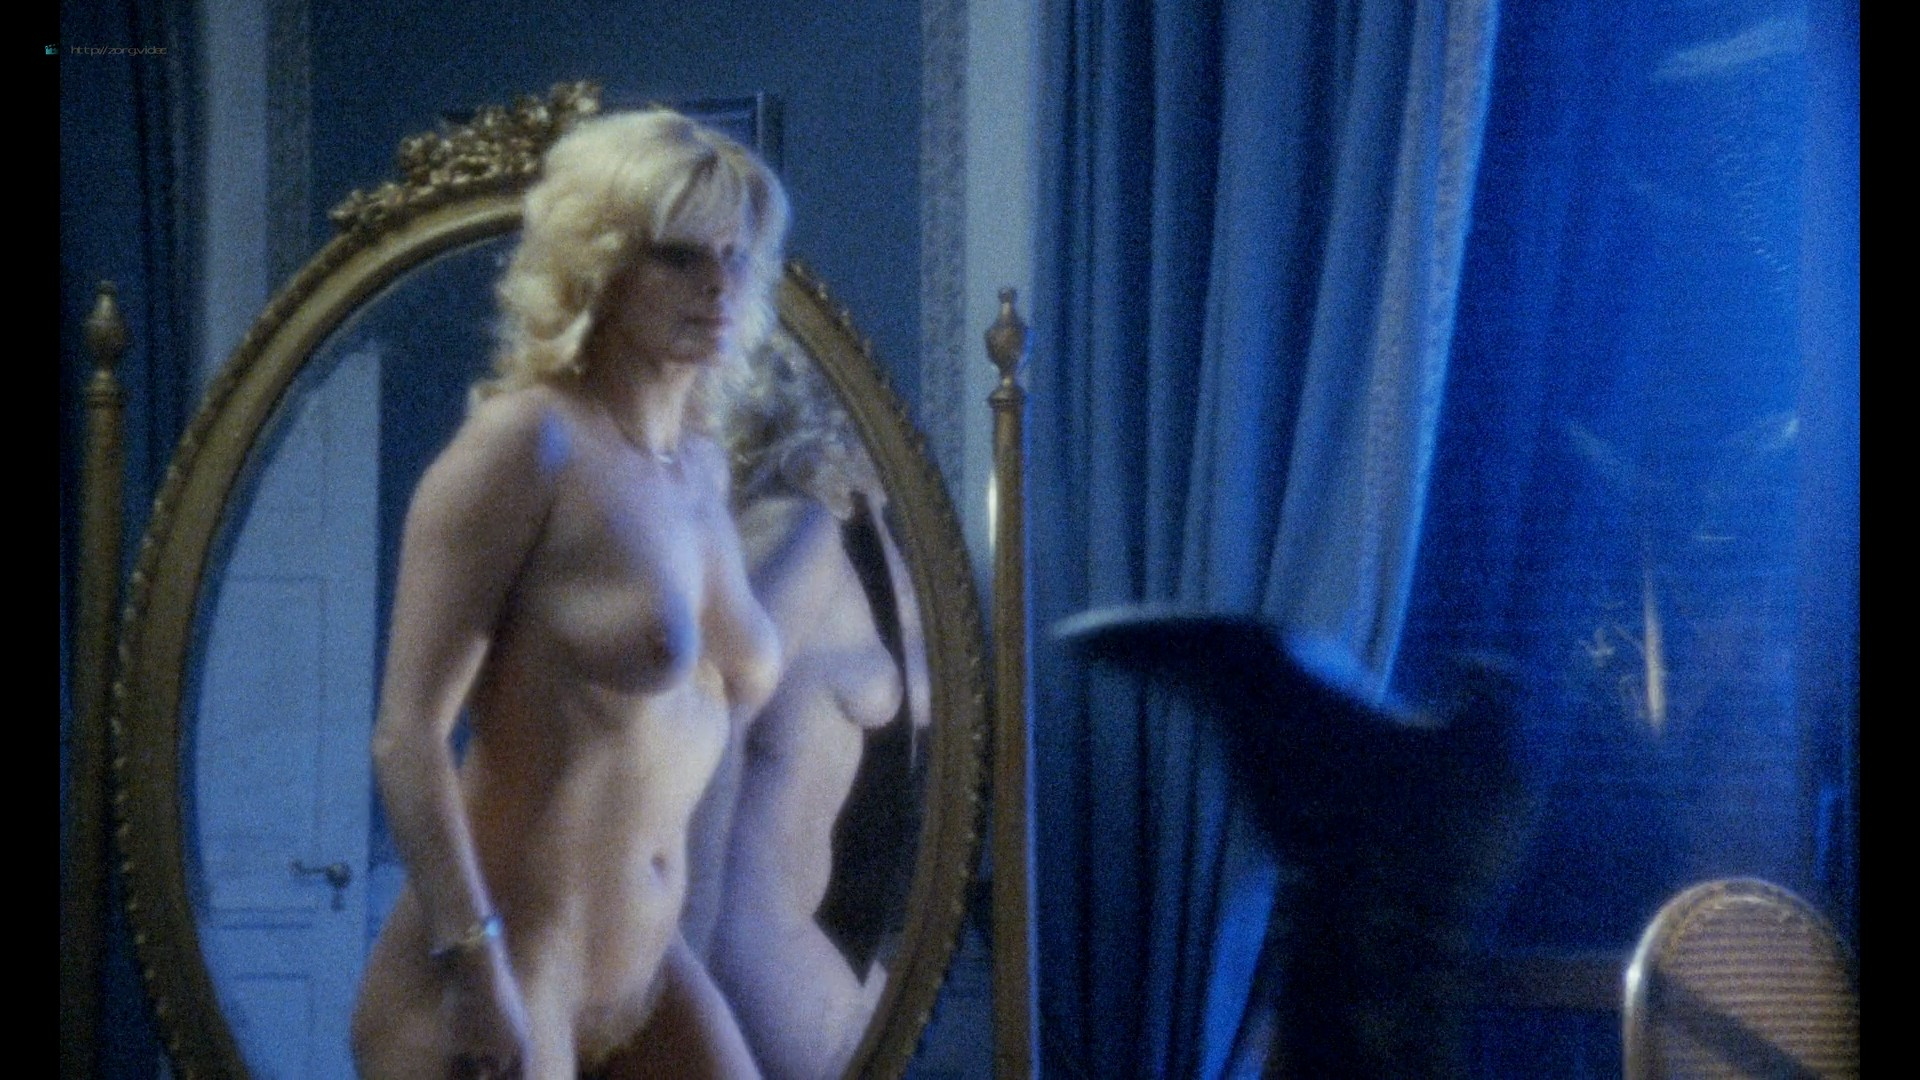 Josephine Jacqueline Jones nude full frontal Florence Guérin and others nude sex too - Black Venus (1983) HD 1080p Web (11)